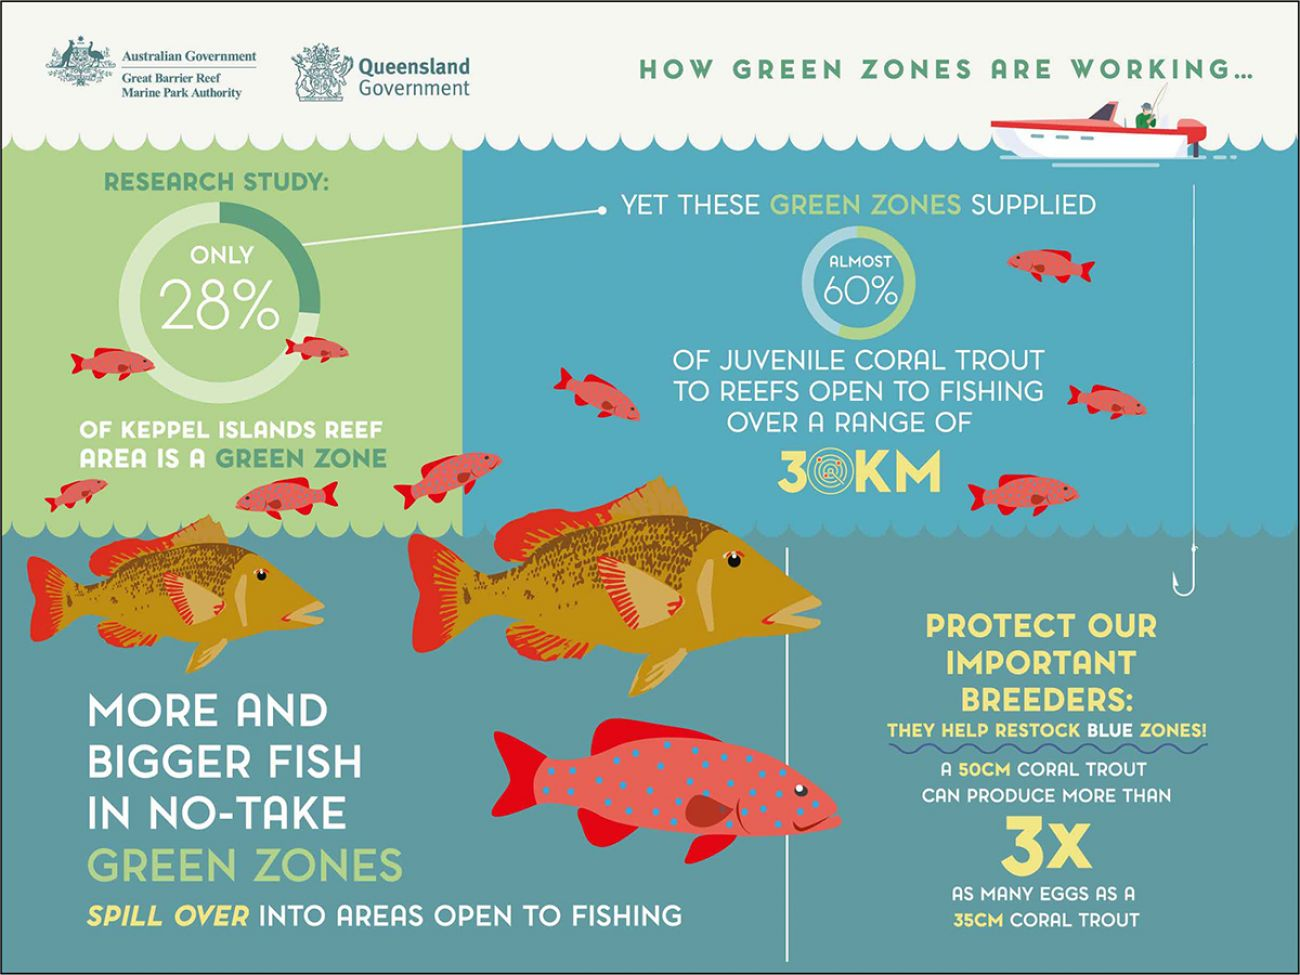 Decorative graphic that shows how no-take green zones work